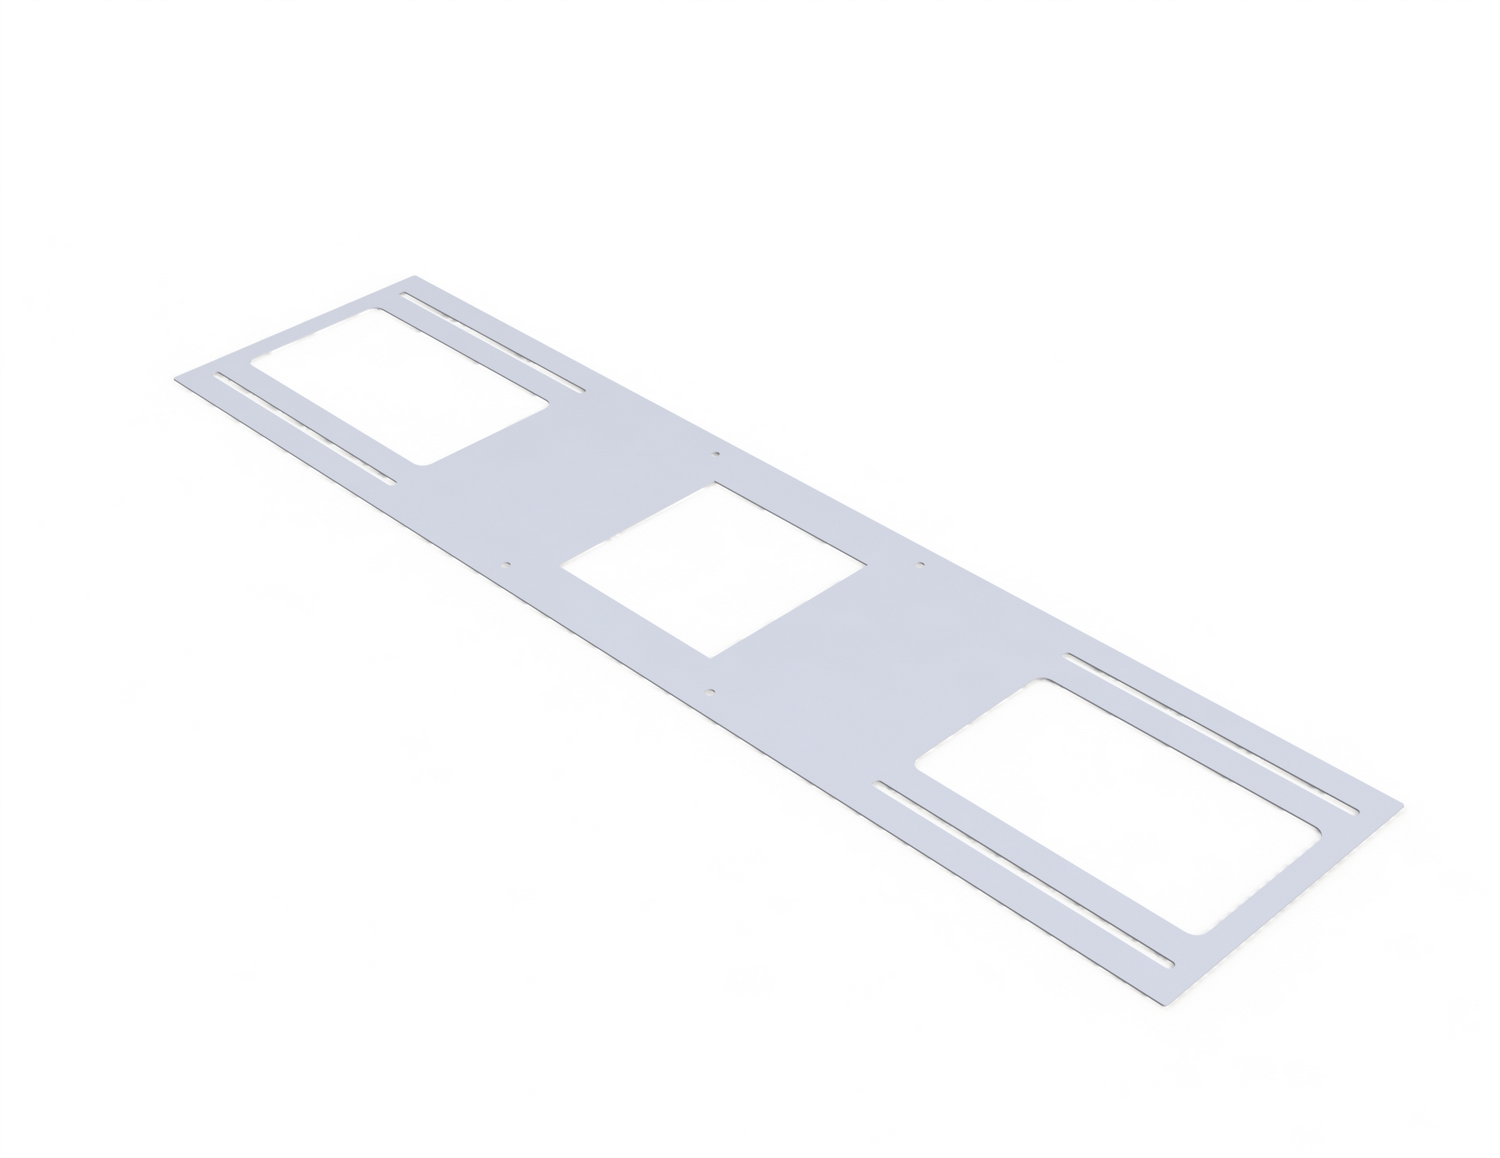 Disc Light Mounting Plate from the Brio Disc Light collection by American Lighting BR4 MP SQ